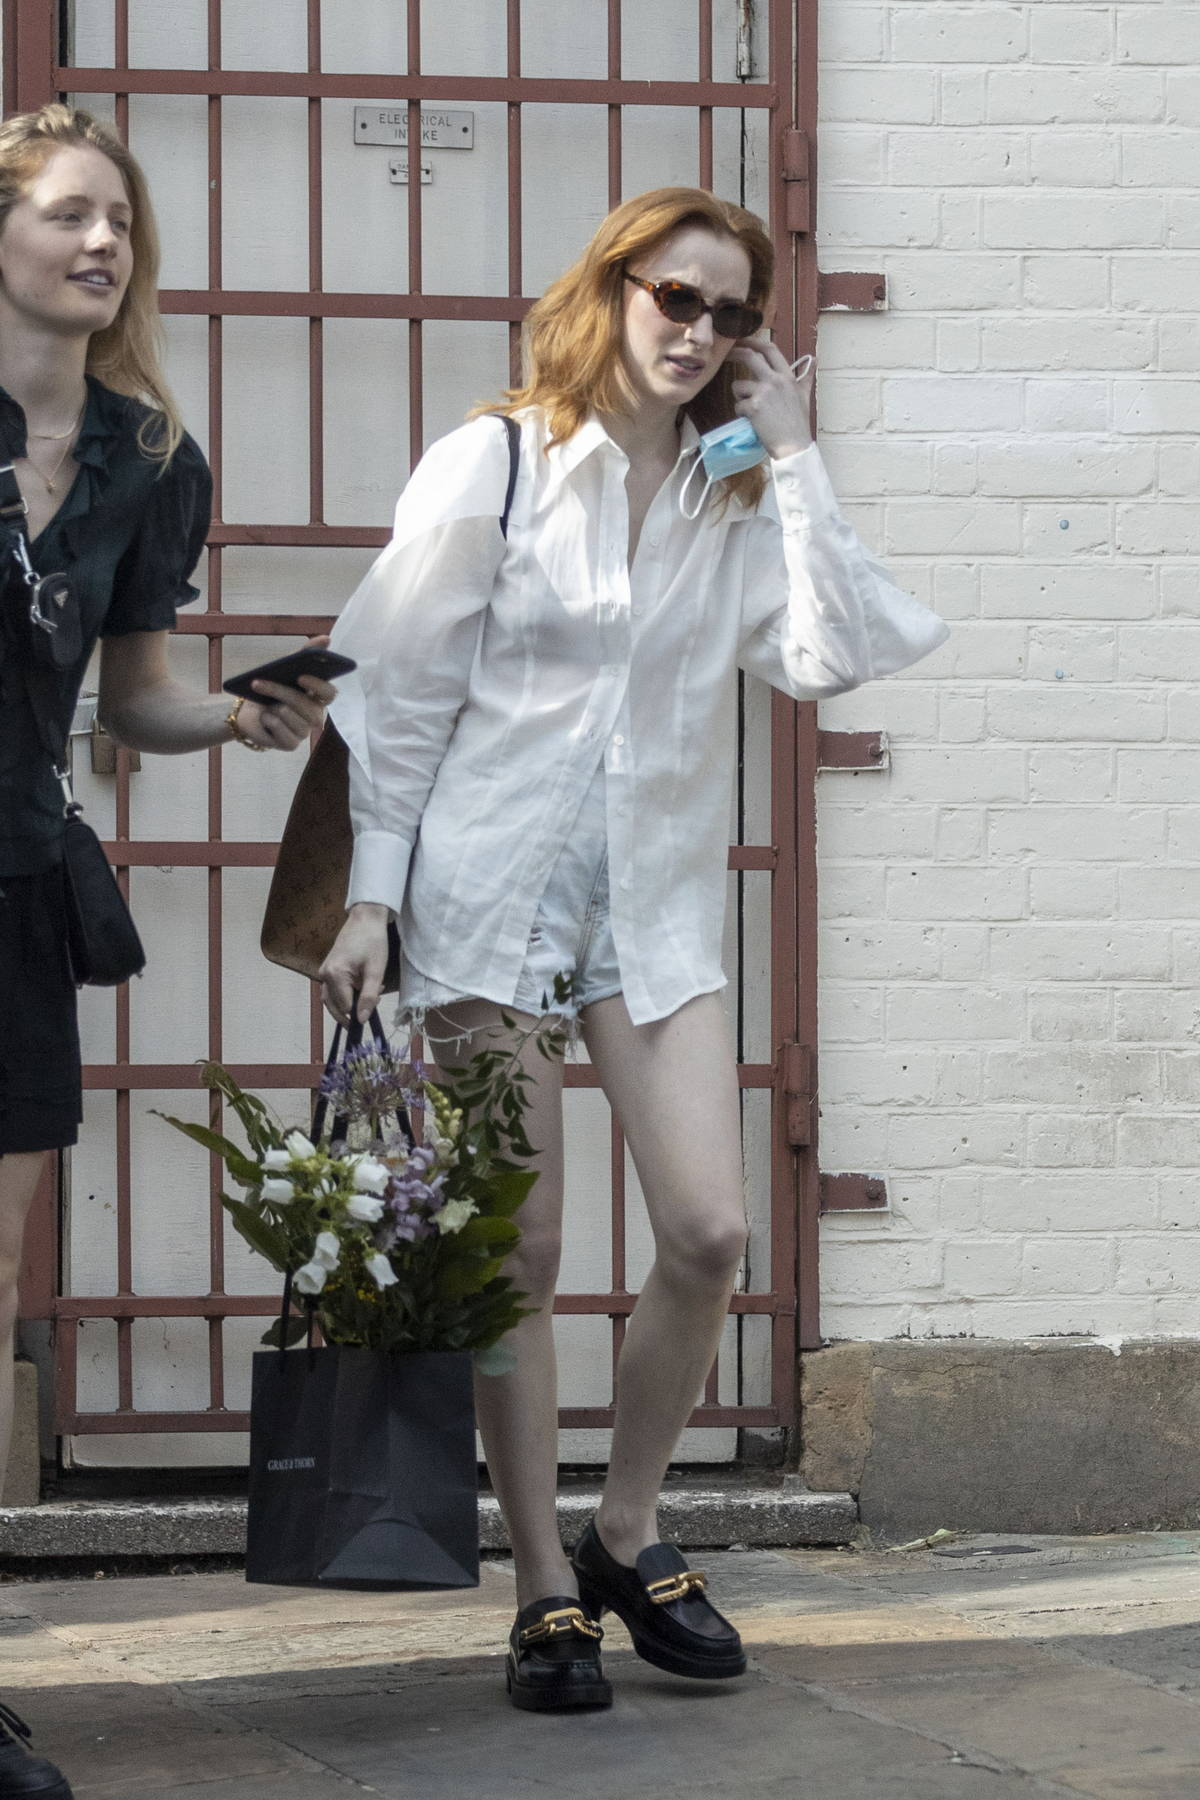 Phoebe Dynevor wears a white shirt and denim cutoffs as she leaves a photoshoot in London, UK